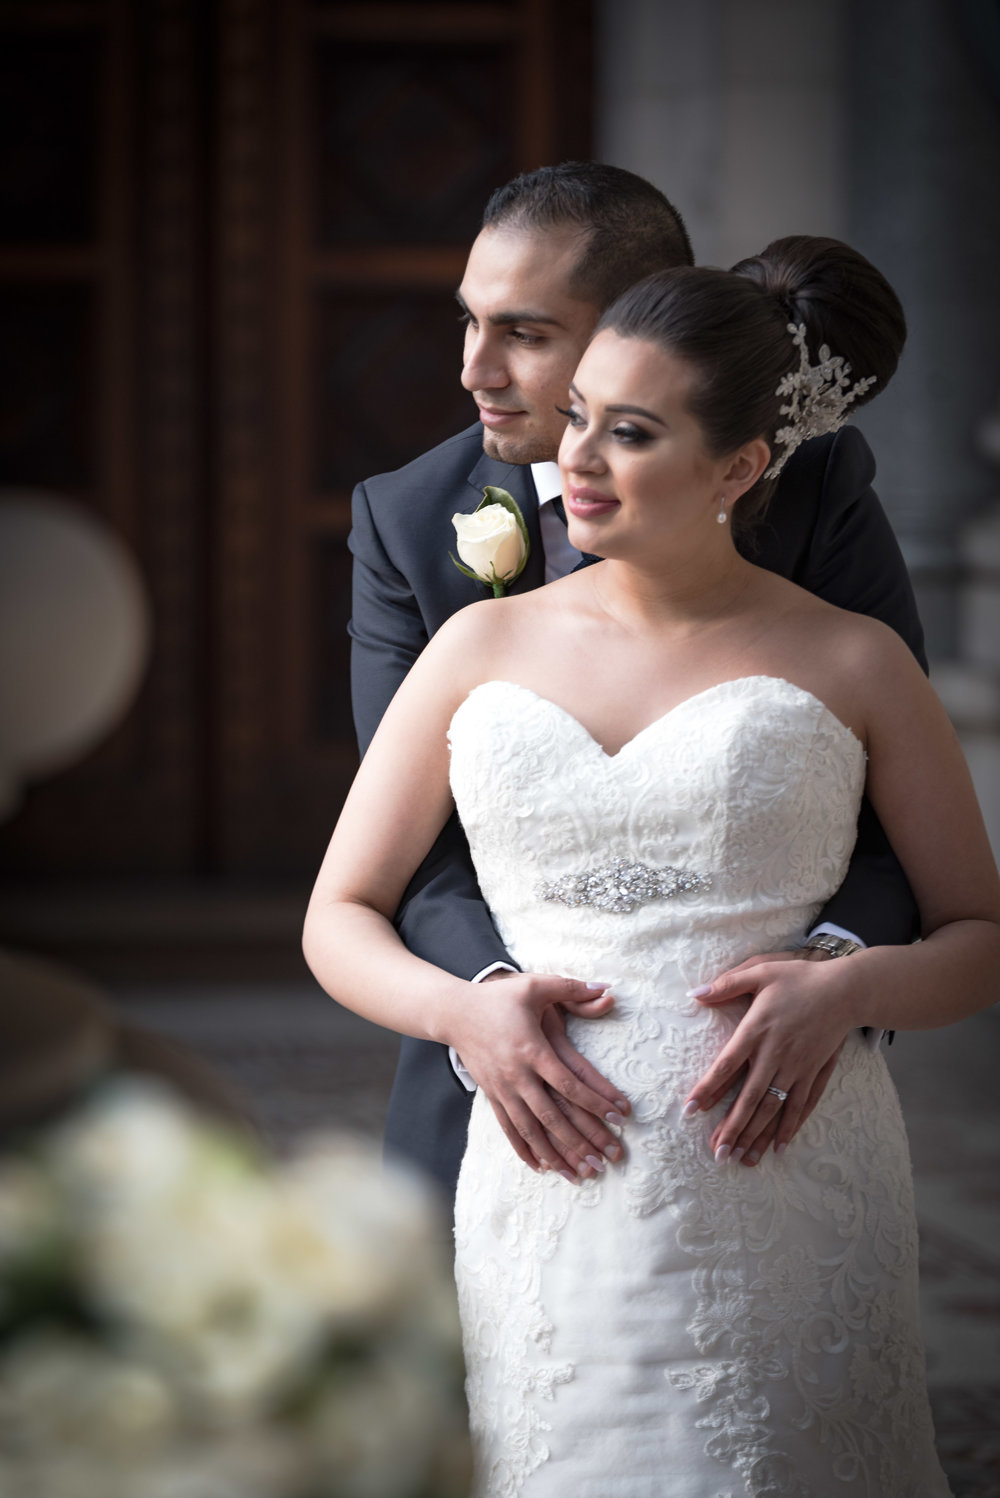 Mark Carniato Photography - Wedding Photography Melbourne - Cindy and Yachin-12.jpg